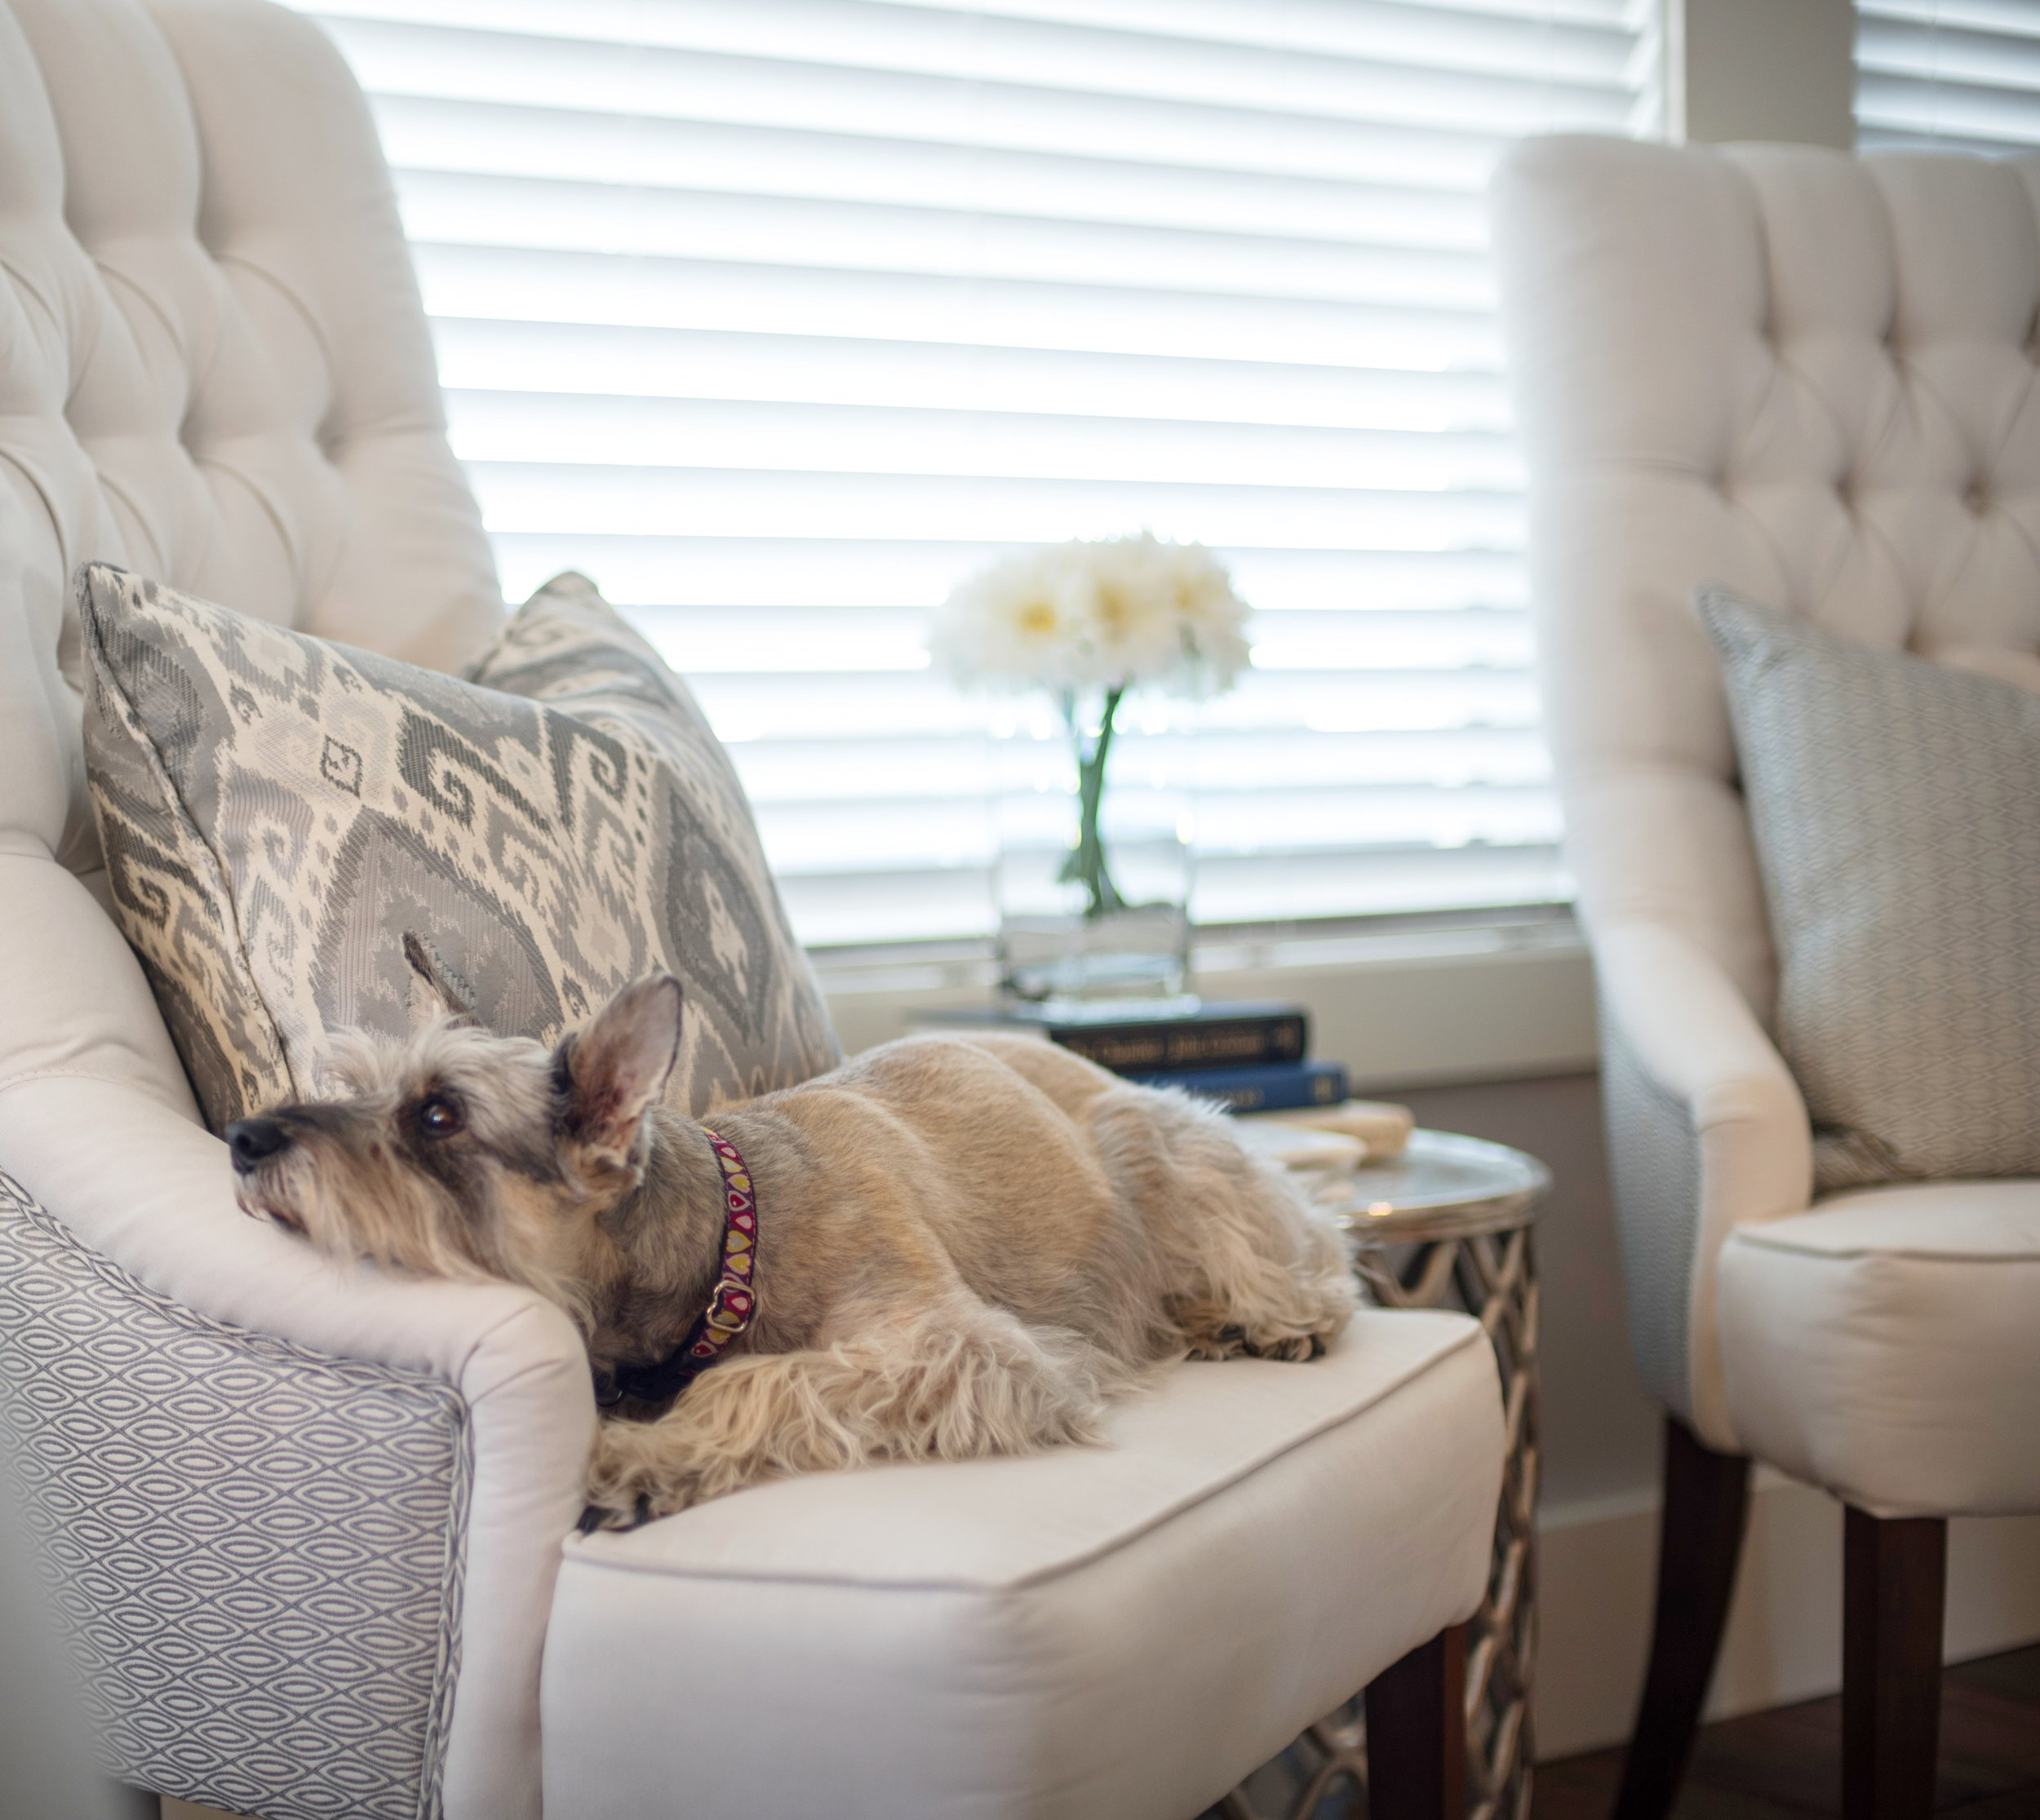 WHITE UPHOLSTERED CHAIR WITH IKAT PATTERNED PILLOW, LIVING ROOM DECOR, GRAY AND WHITE DECOR, INTERIOR DESIGNS BY ADRIENNE, CRANBROOK BC